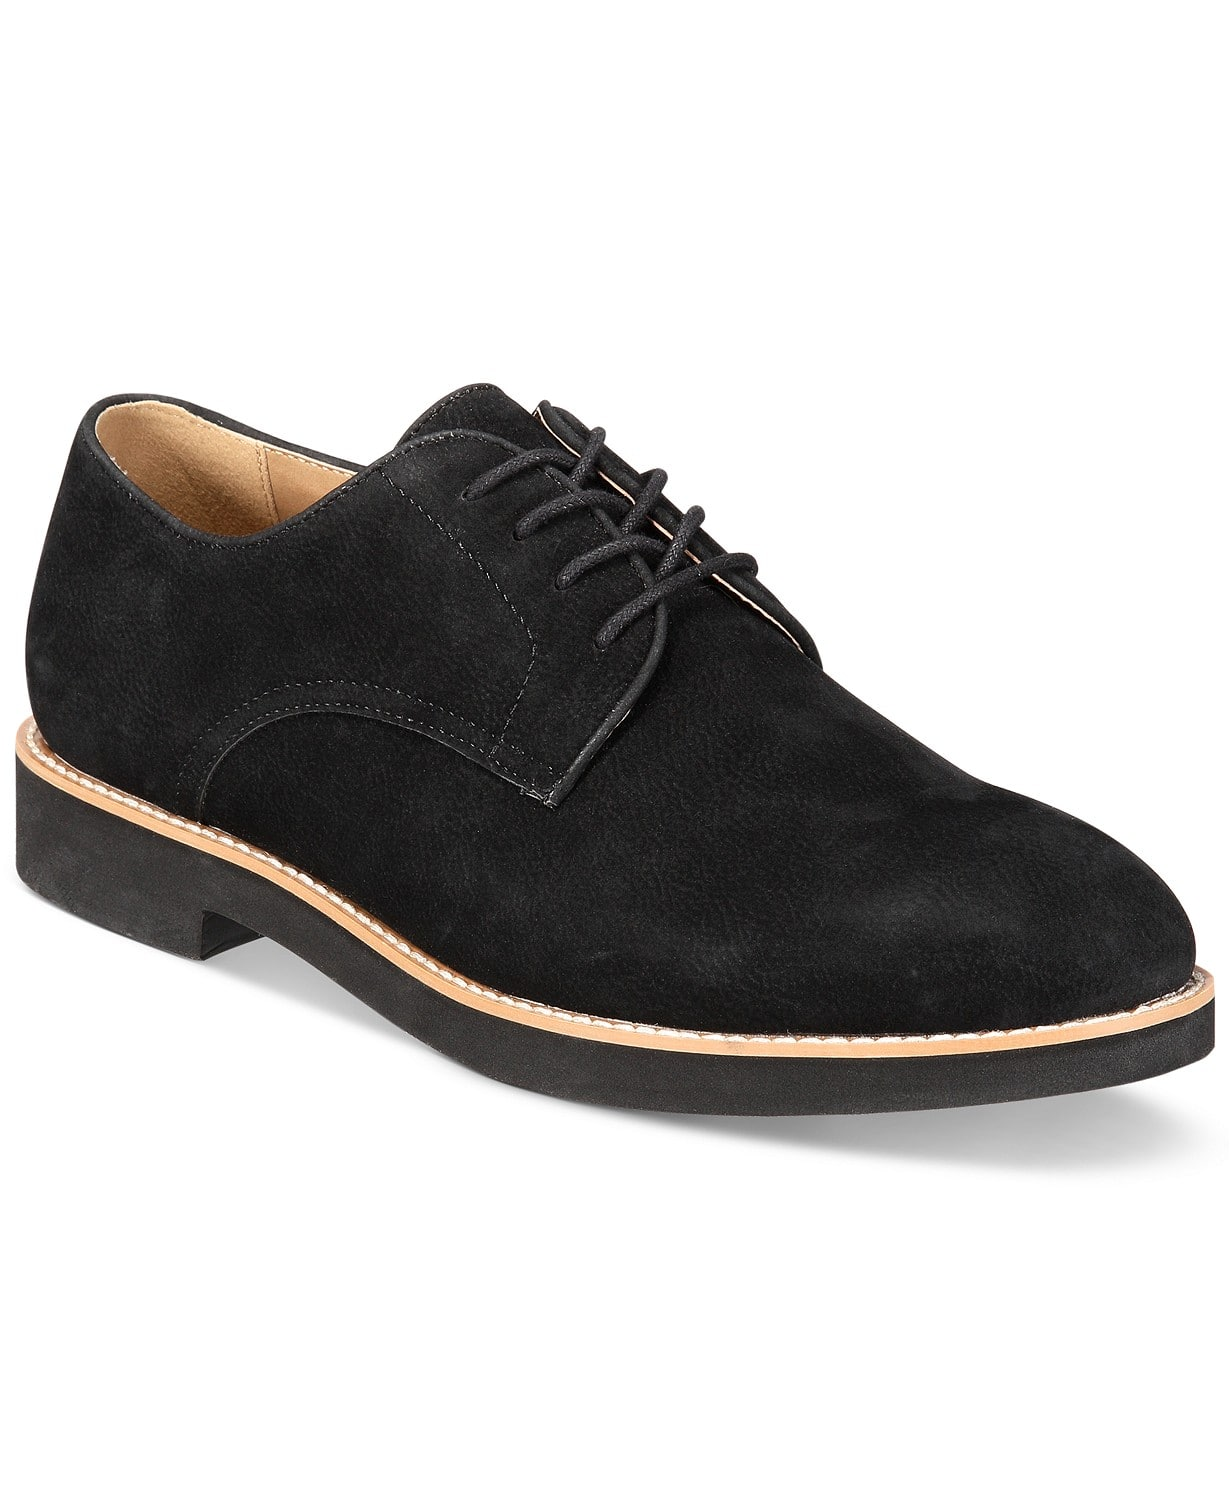 Club Room Men's Shiloh Buck Dress Shoes (4 colors) $18.75 + free store pickup at Macys